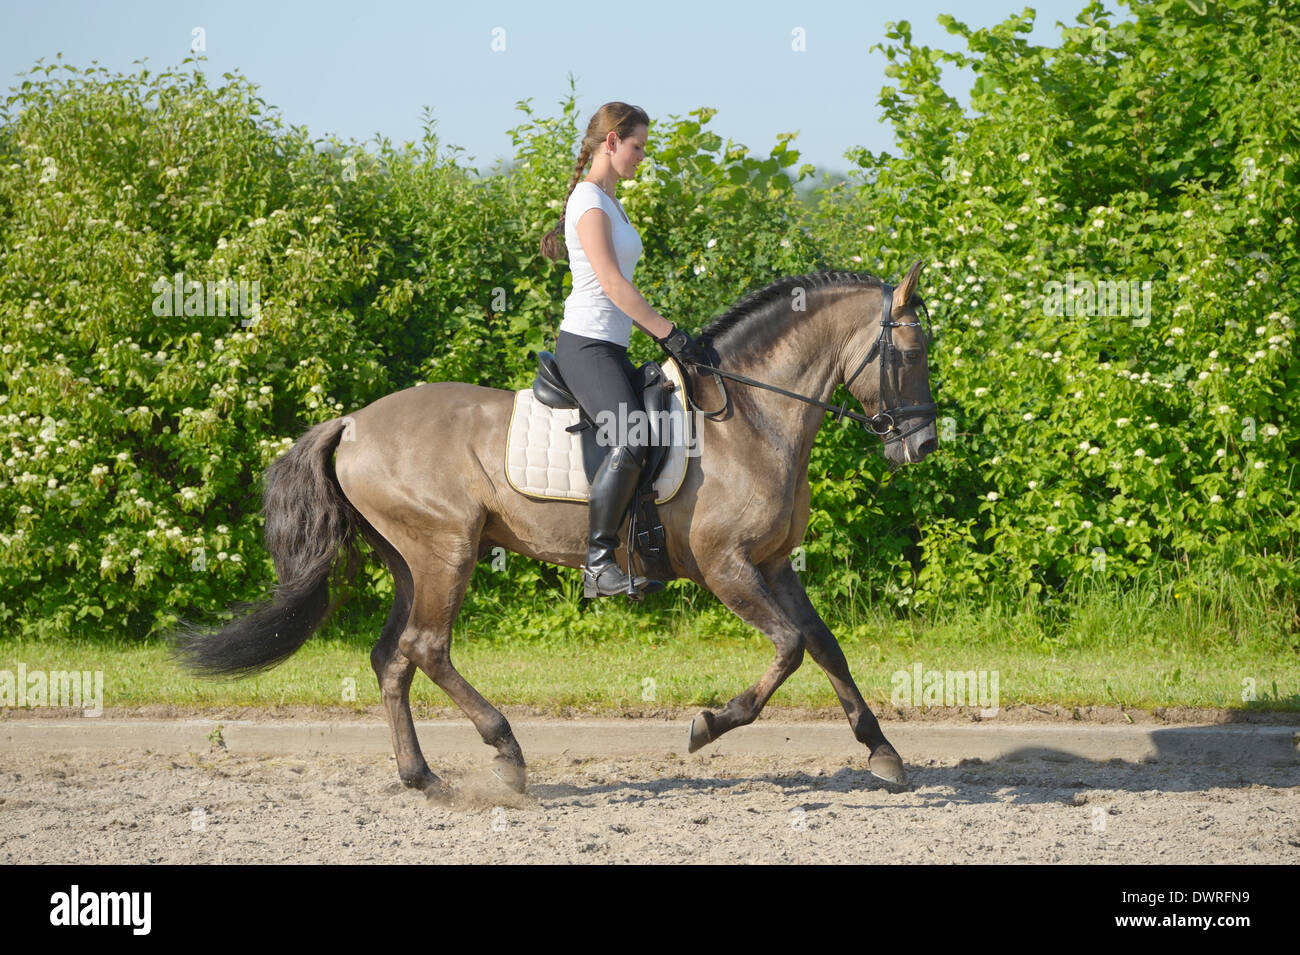 Dressage rider on back of a Lusitano horse stallion cantering - Stock Image